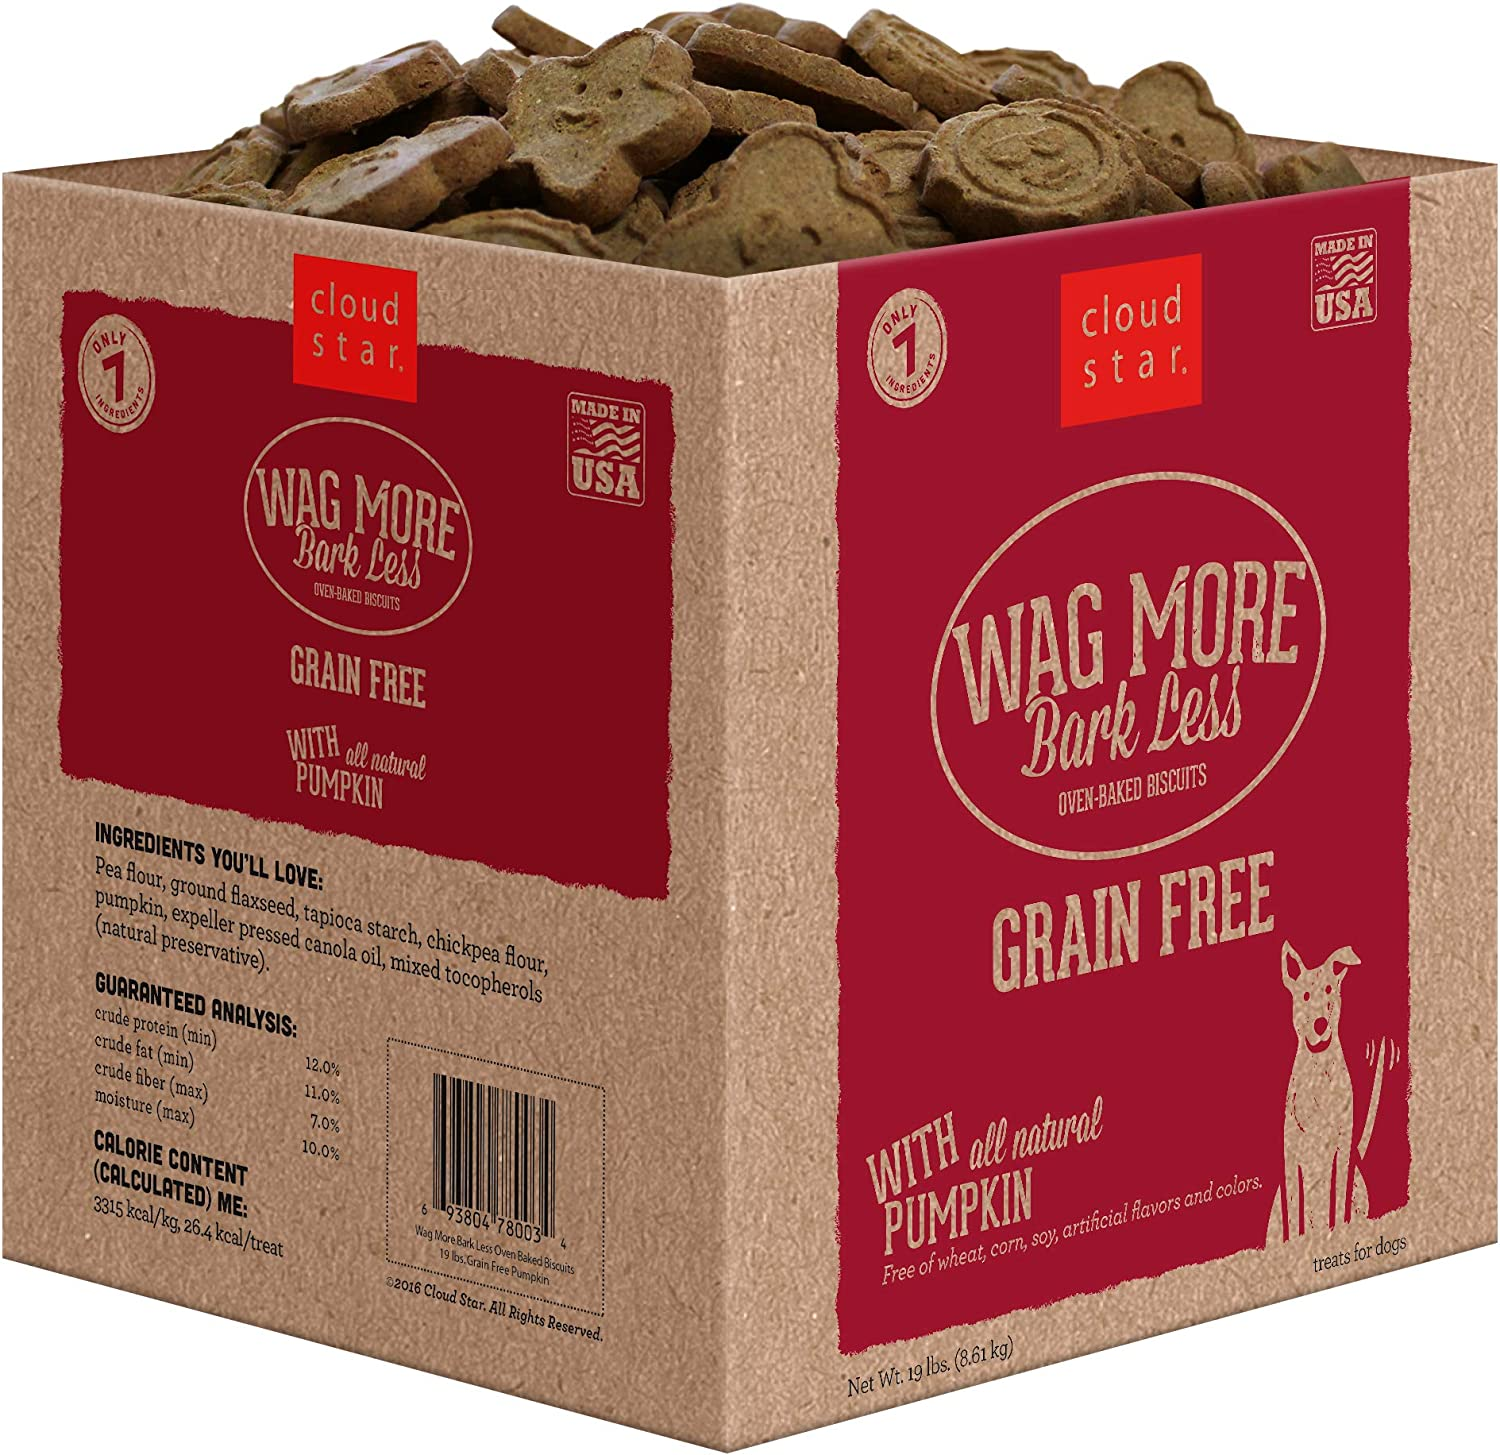 Cloud Star Wag More Bark Less Oven Baked Biscuits, Grain Free Crunchy Dog Treats, Made in the USA